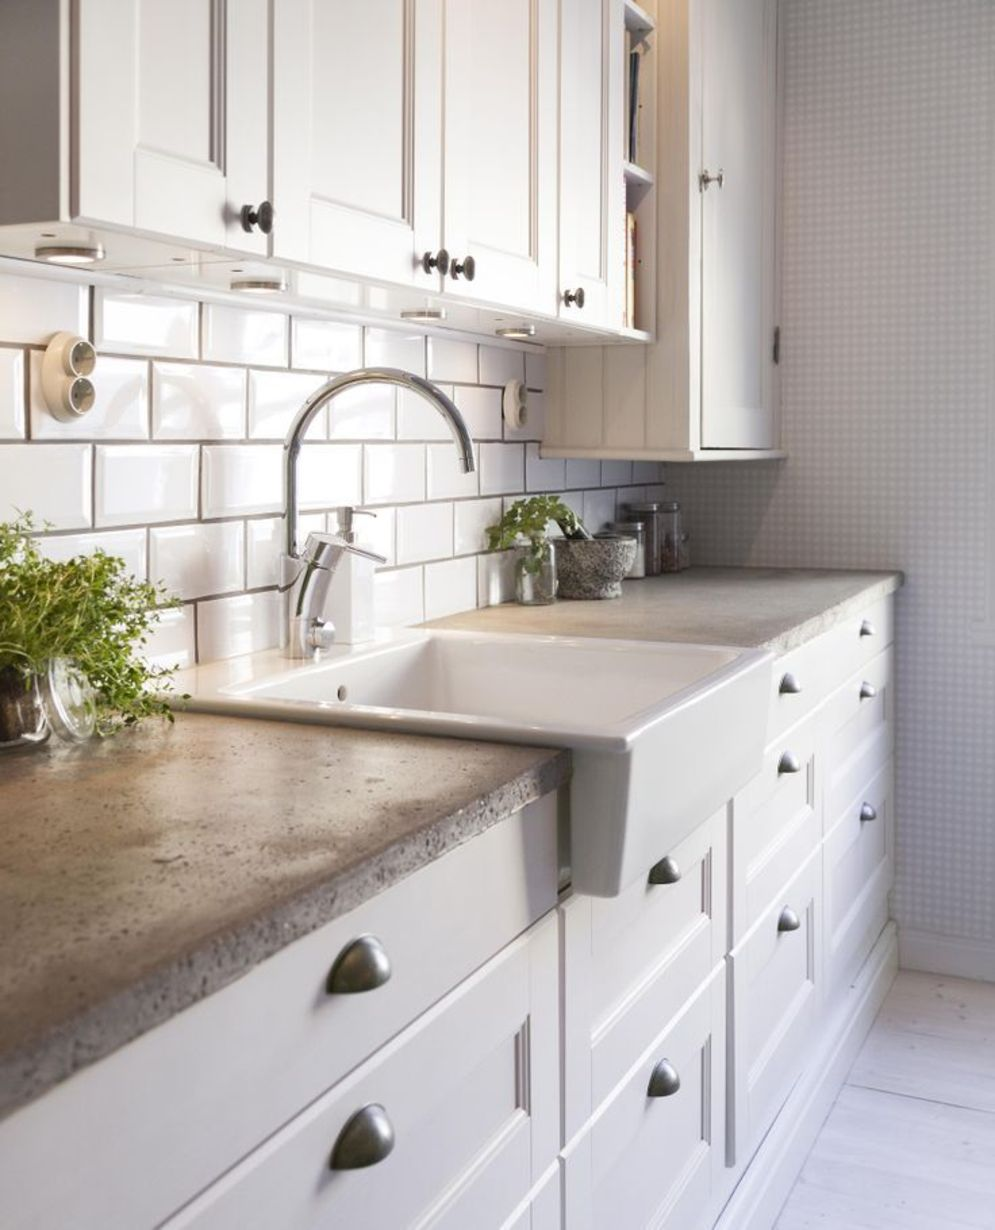 Classy kitchen styles in bold display maximizing concrete benchtop designs Image 15